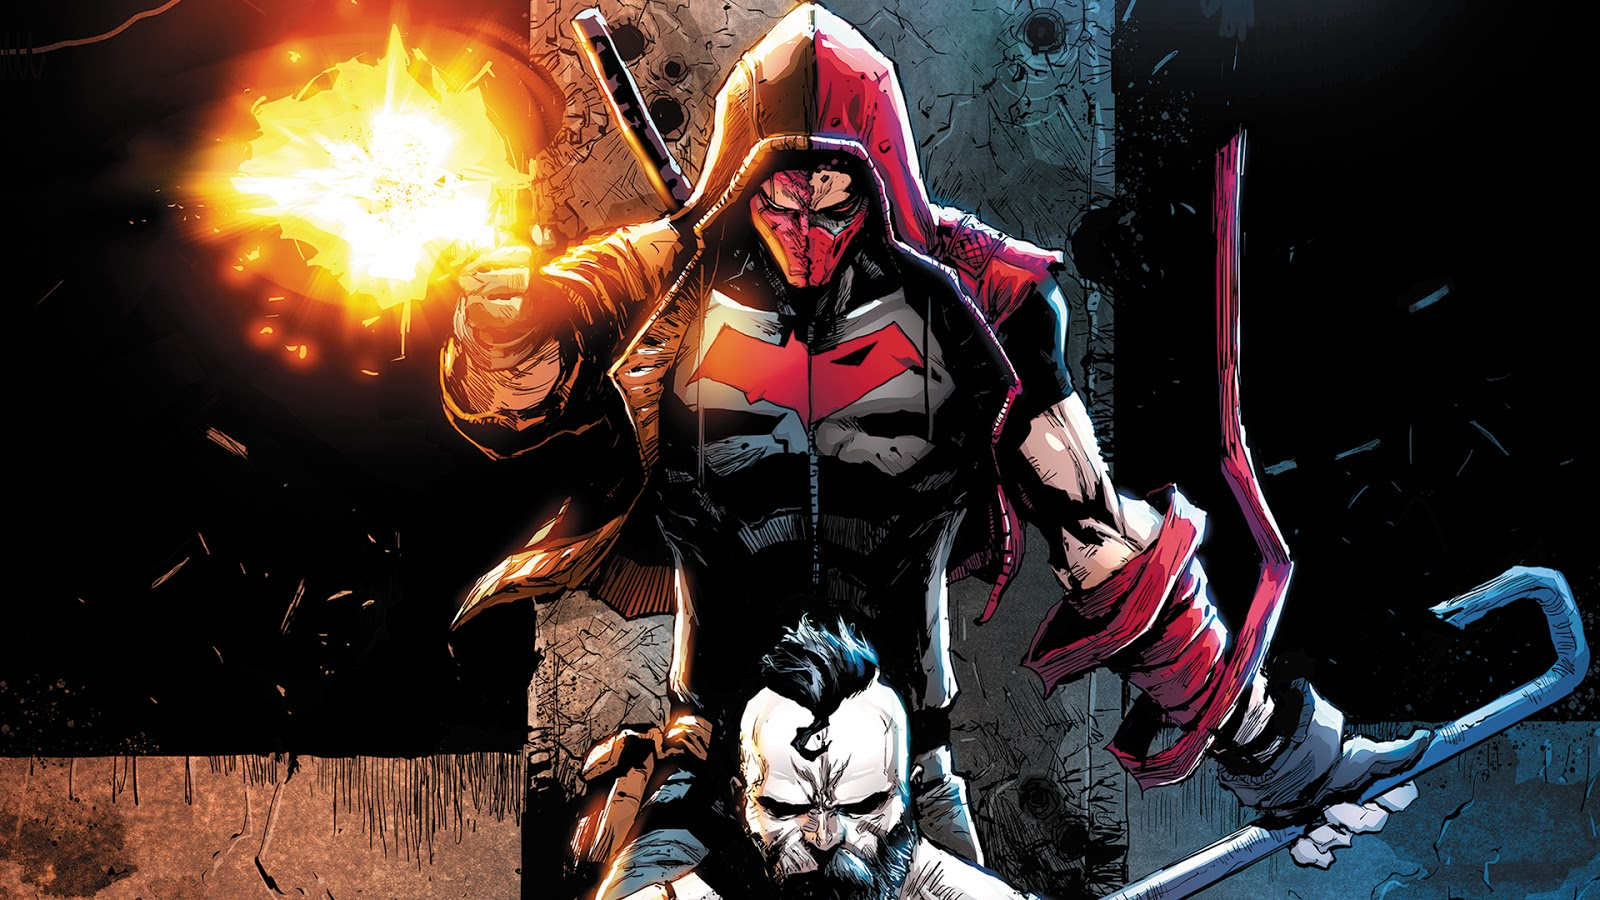 Weird Science Dc Comics Red Hood Outlaw Annual 3 Review